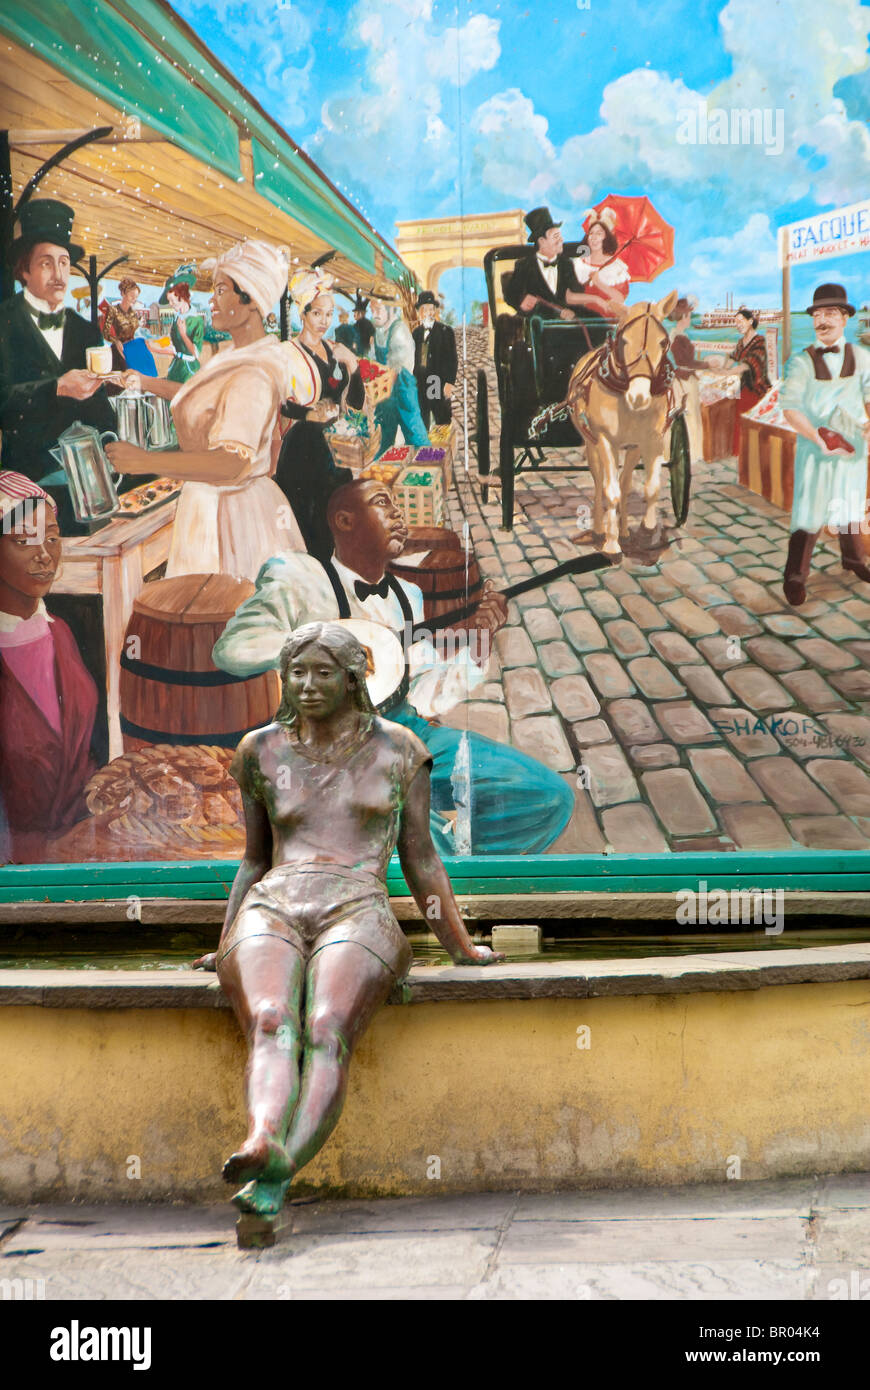 French Market fountain, statue and painting in the French Quarter of New Orleans, Louisiana, USA Stock Photo